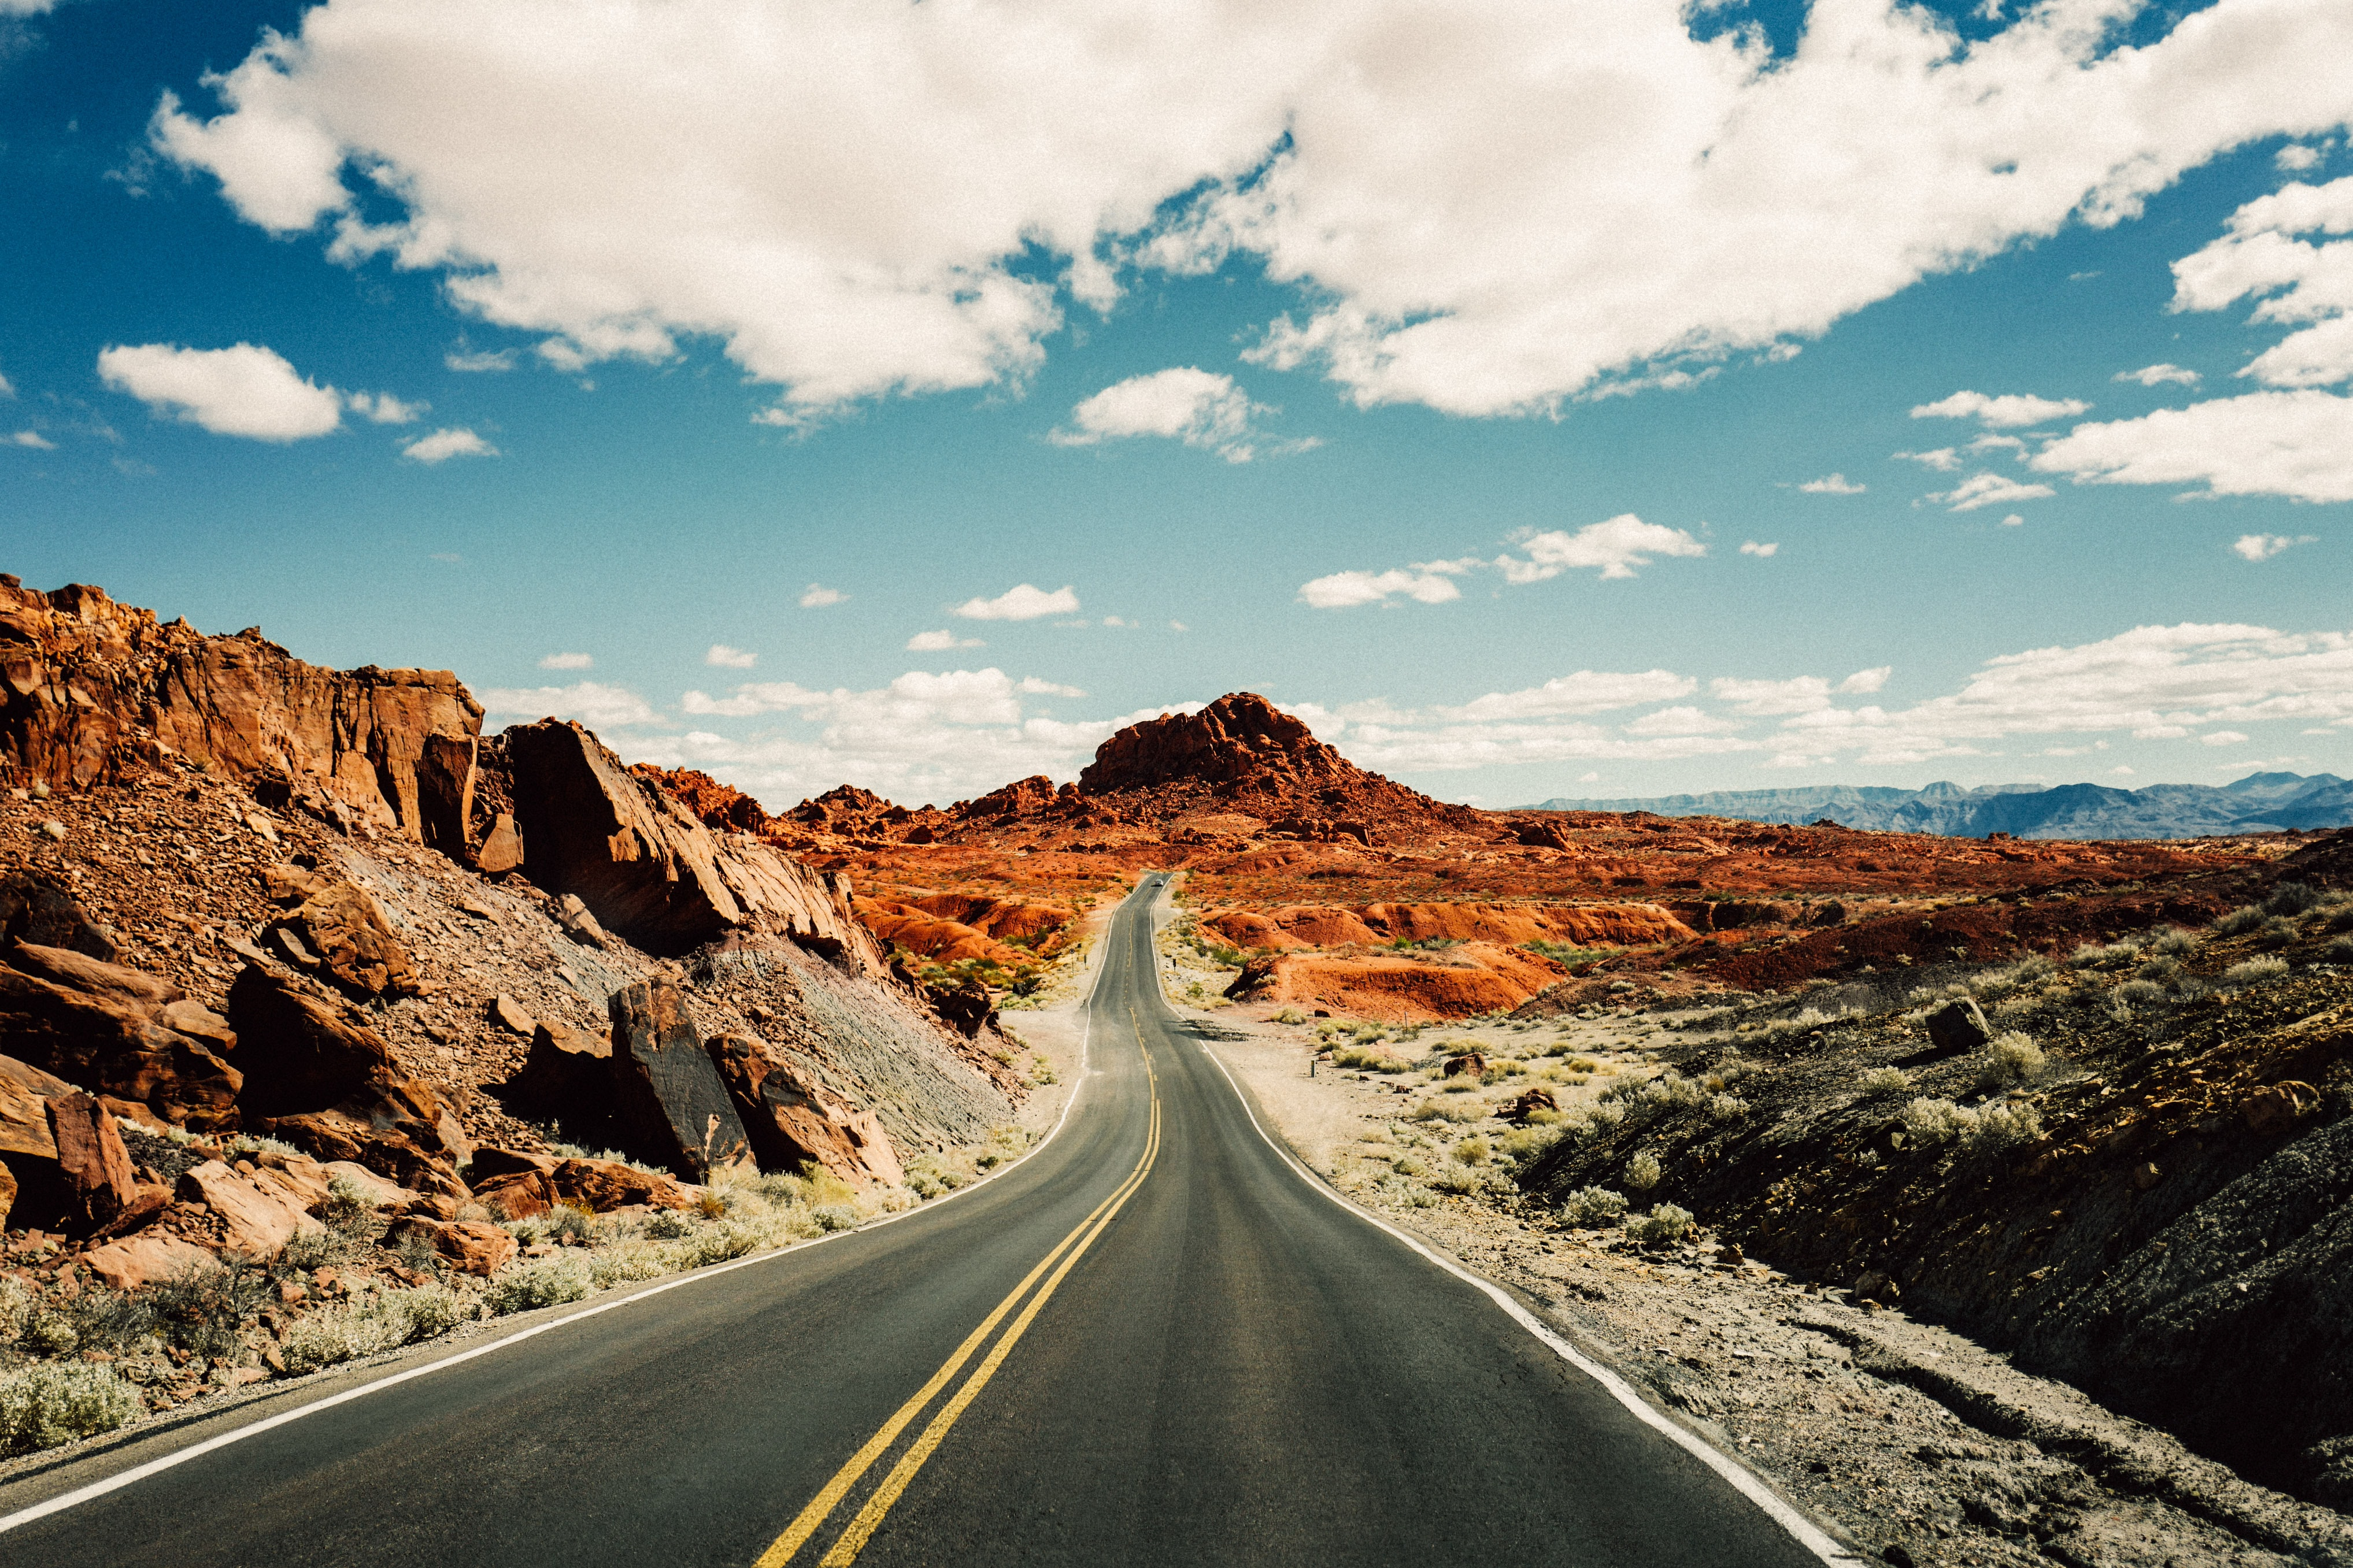 Open road in red rocky desert terrain of Valley of Fire State Park